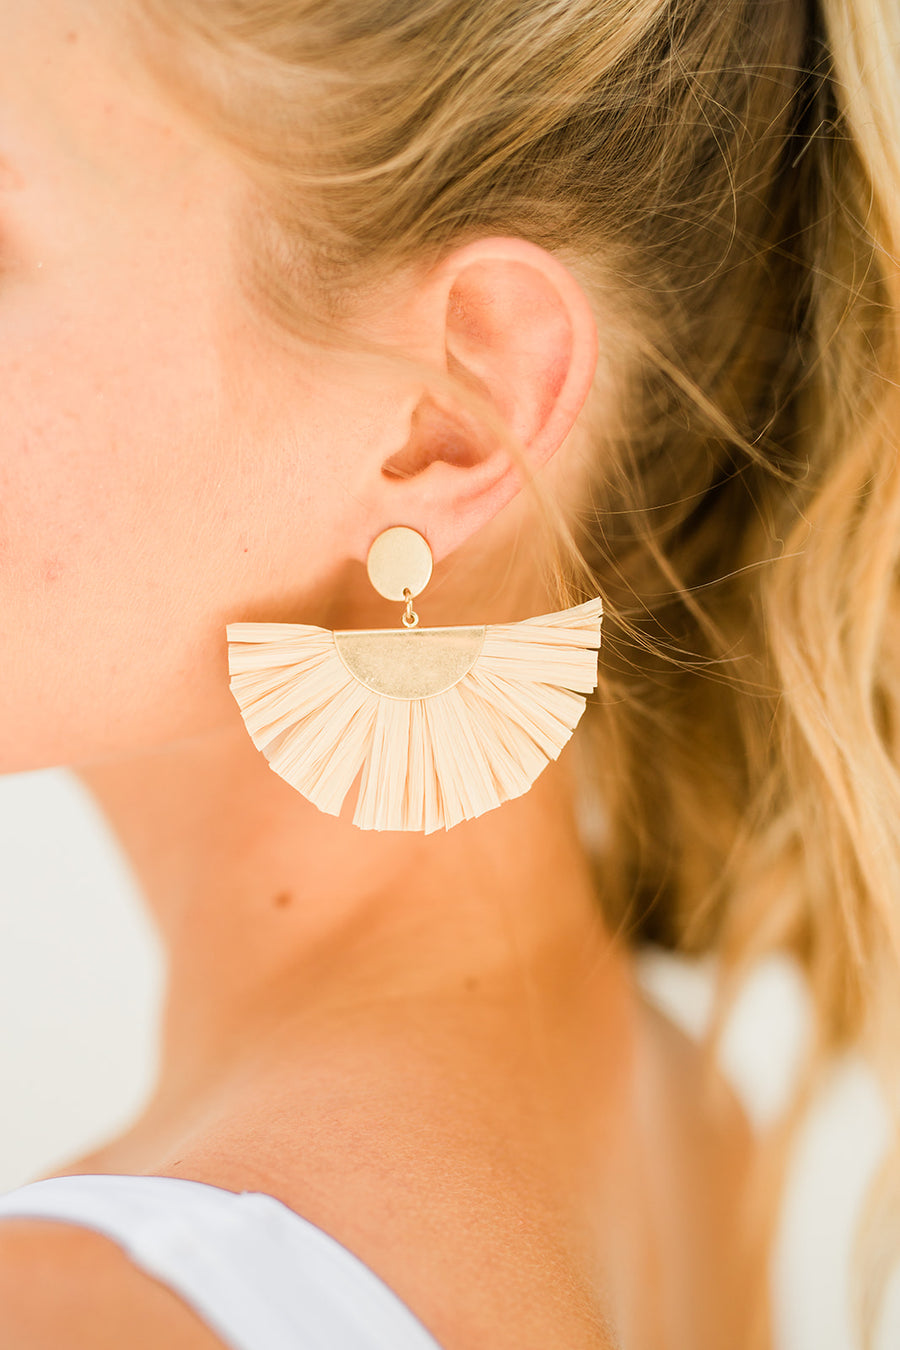 Fiji Raffia Fan Earrings - The Beach Bride by Chic Parisien, a destination for beach weddings, bachelorettes and honeymoons